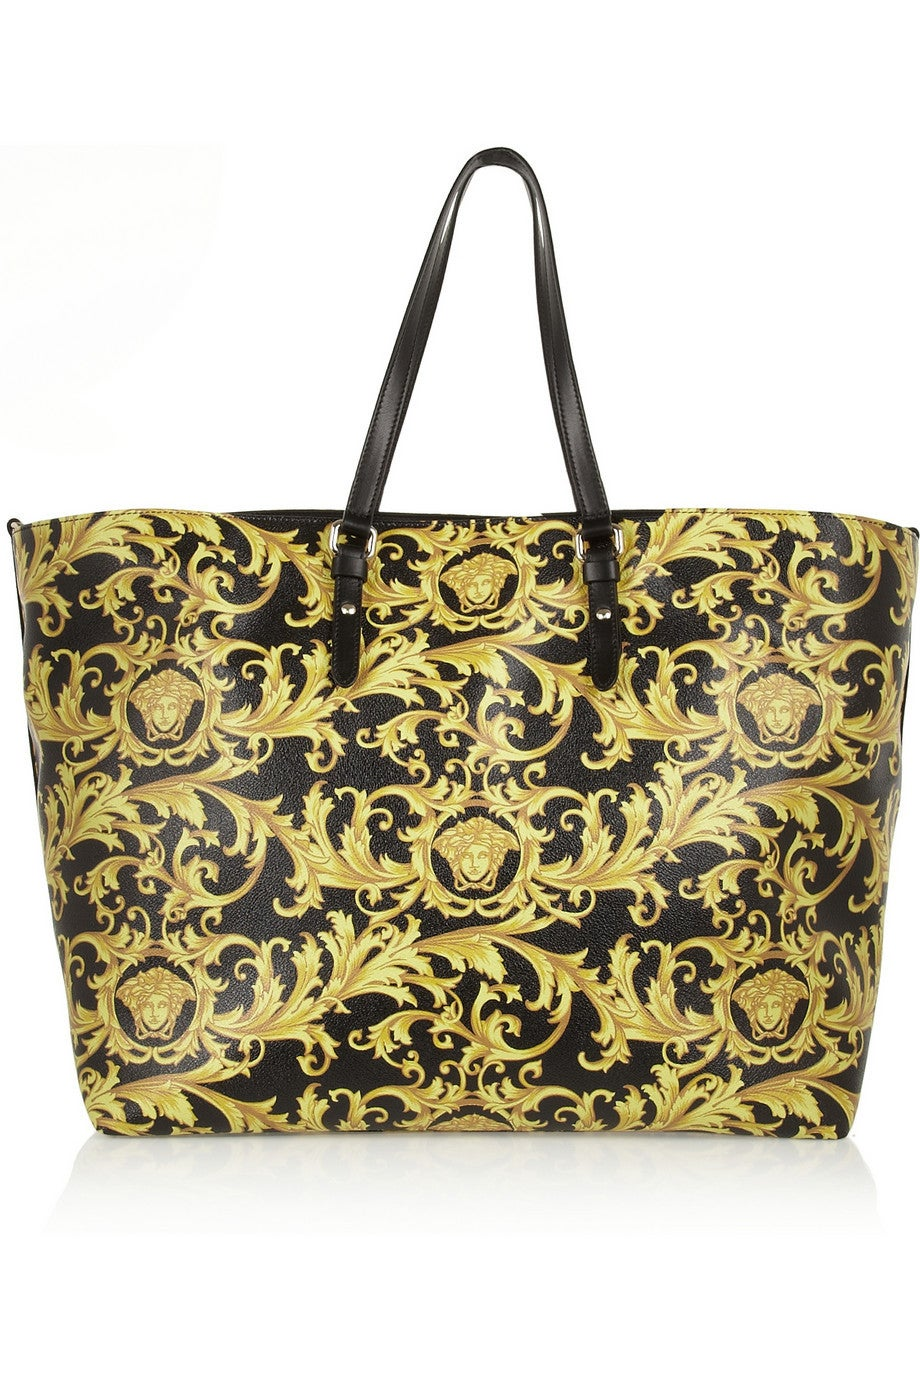 NEW Versace Black and Gold Baroque Printed Tote Bag with Medusa at ...